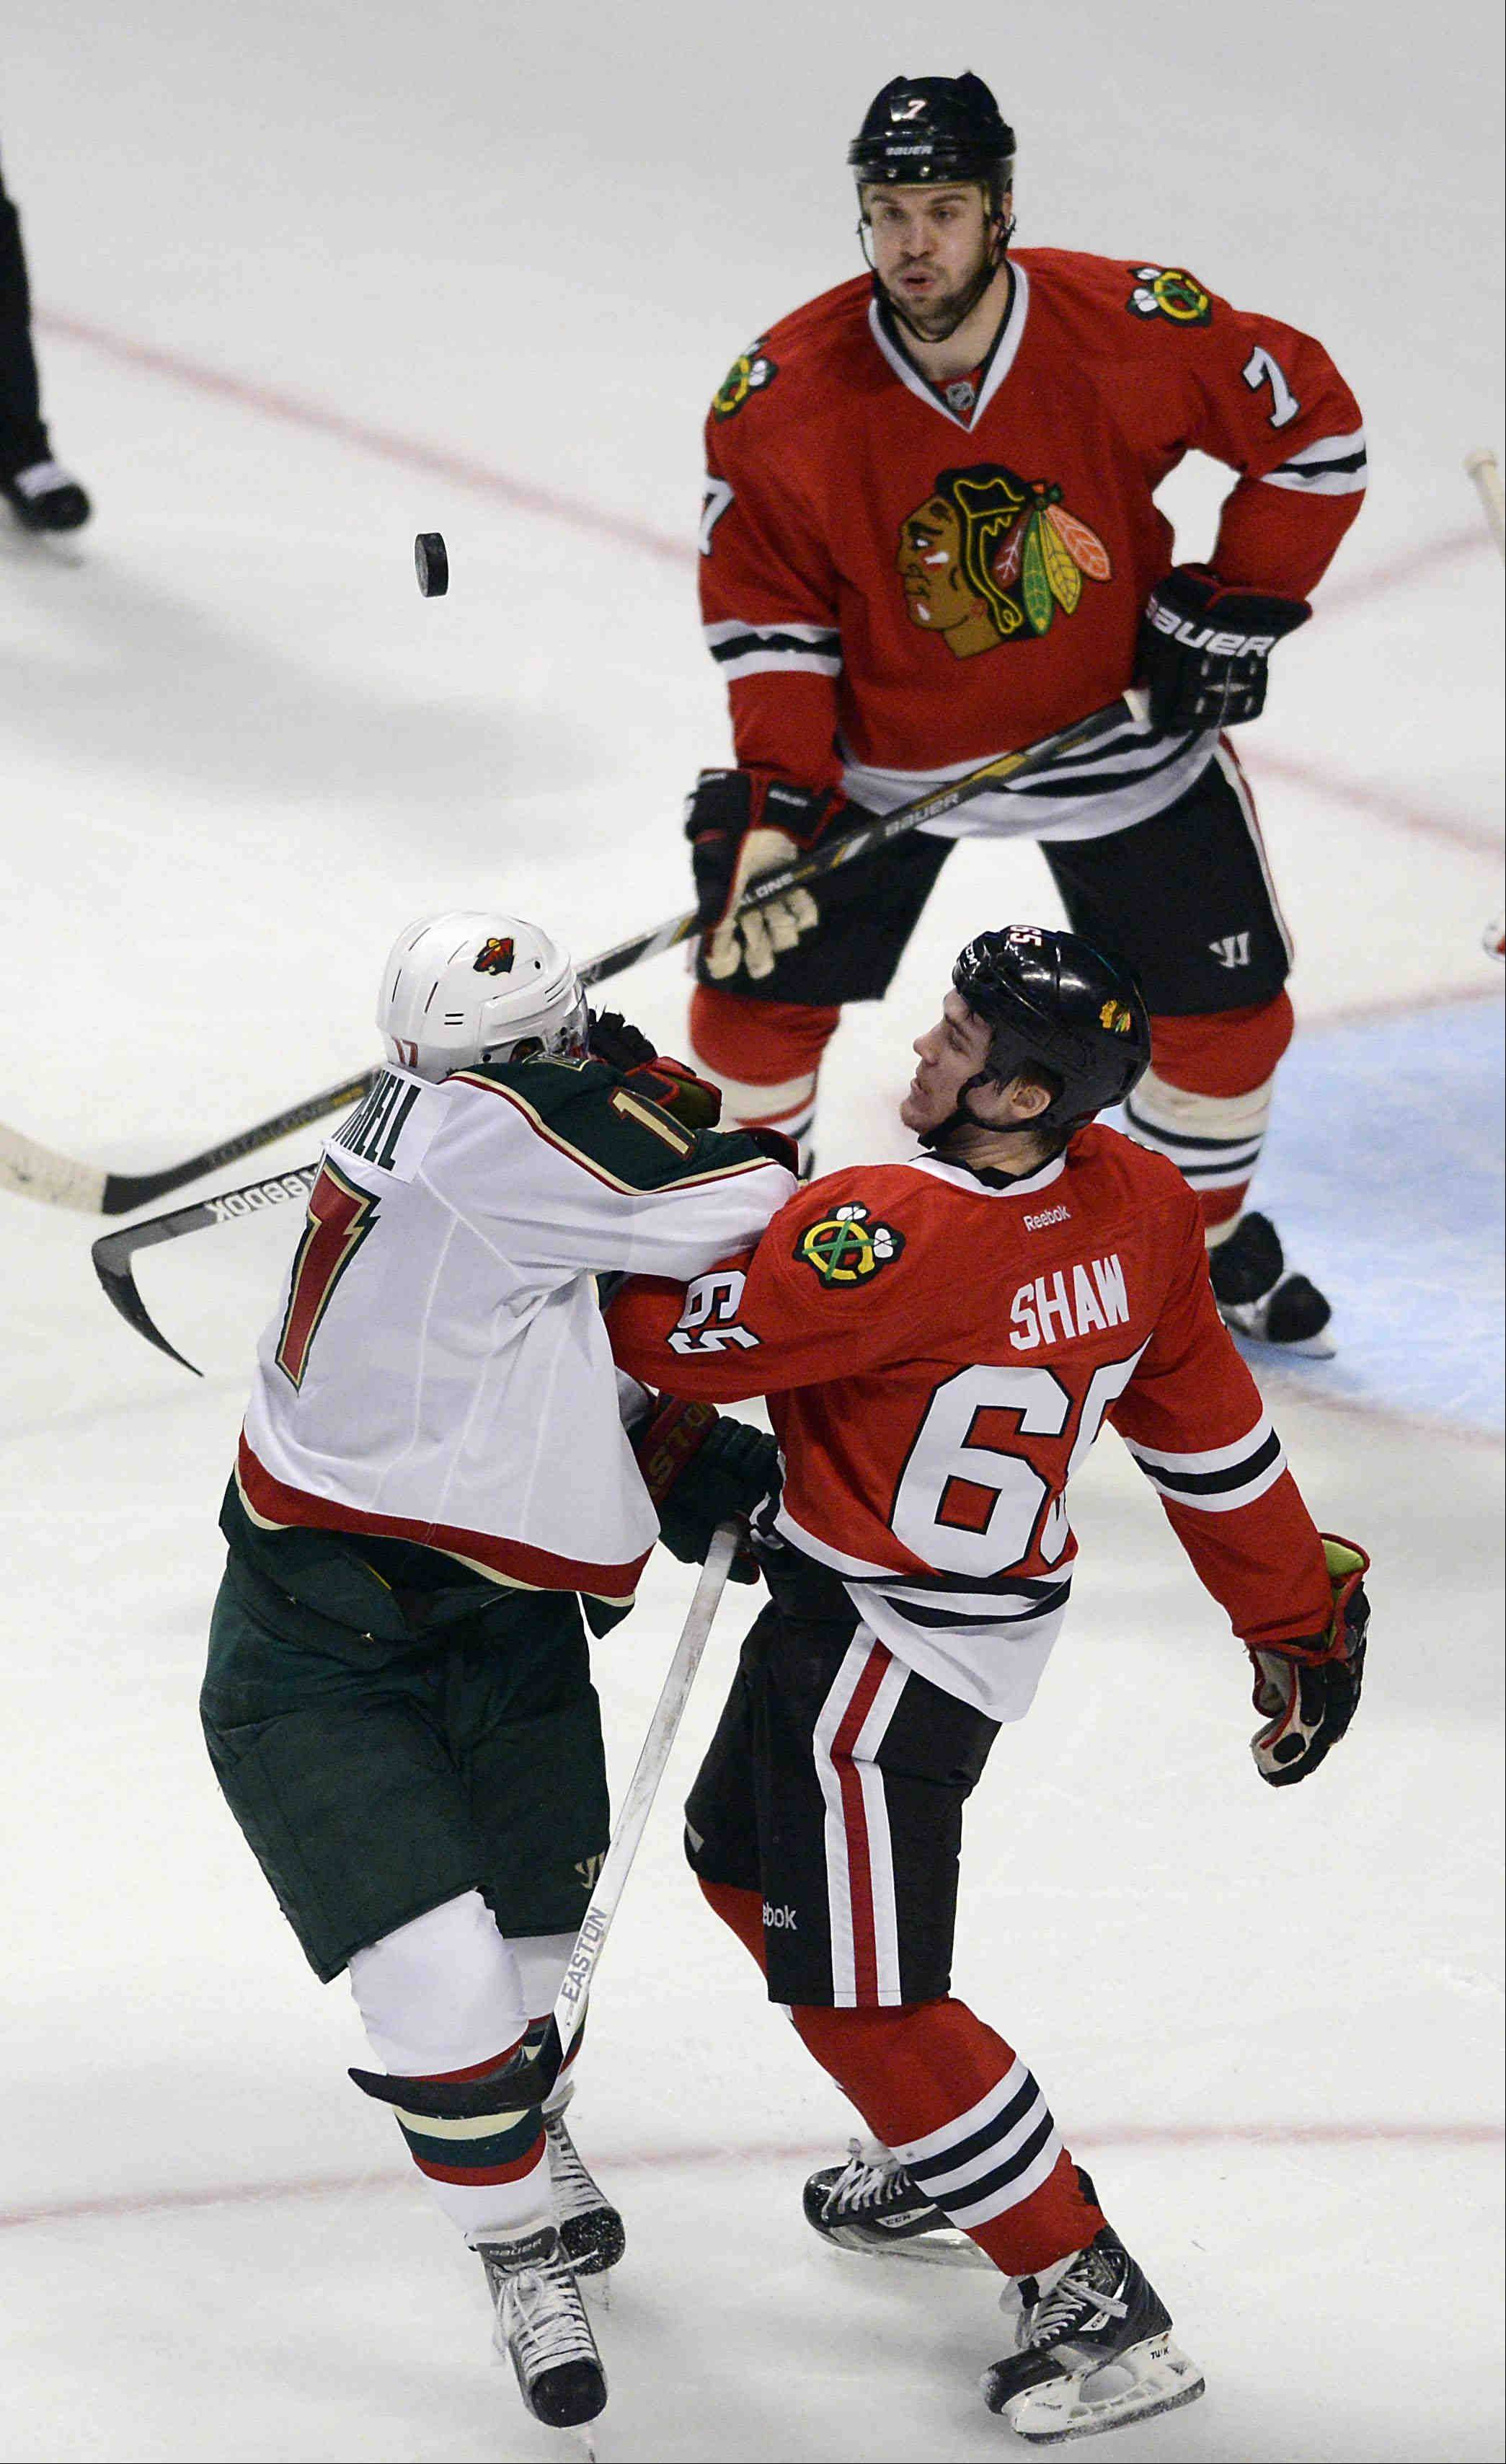 Playoff hockey can create instant rivalries, as the Blackhawks discovered the last three seasons with Vancouver. Now that the Hawks will be in the same division next season with the Wild, the intensity could grow.